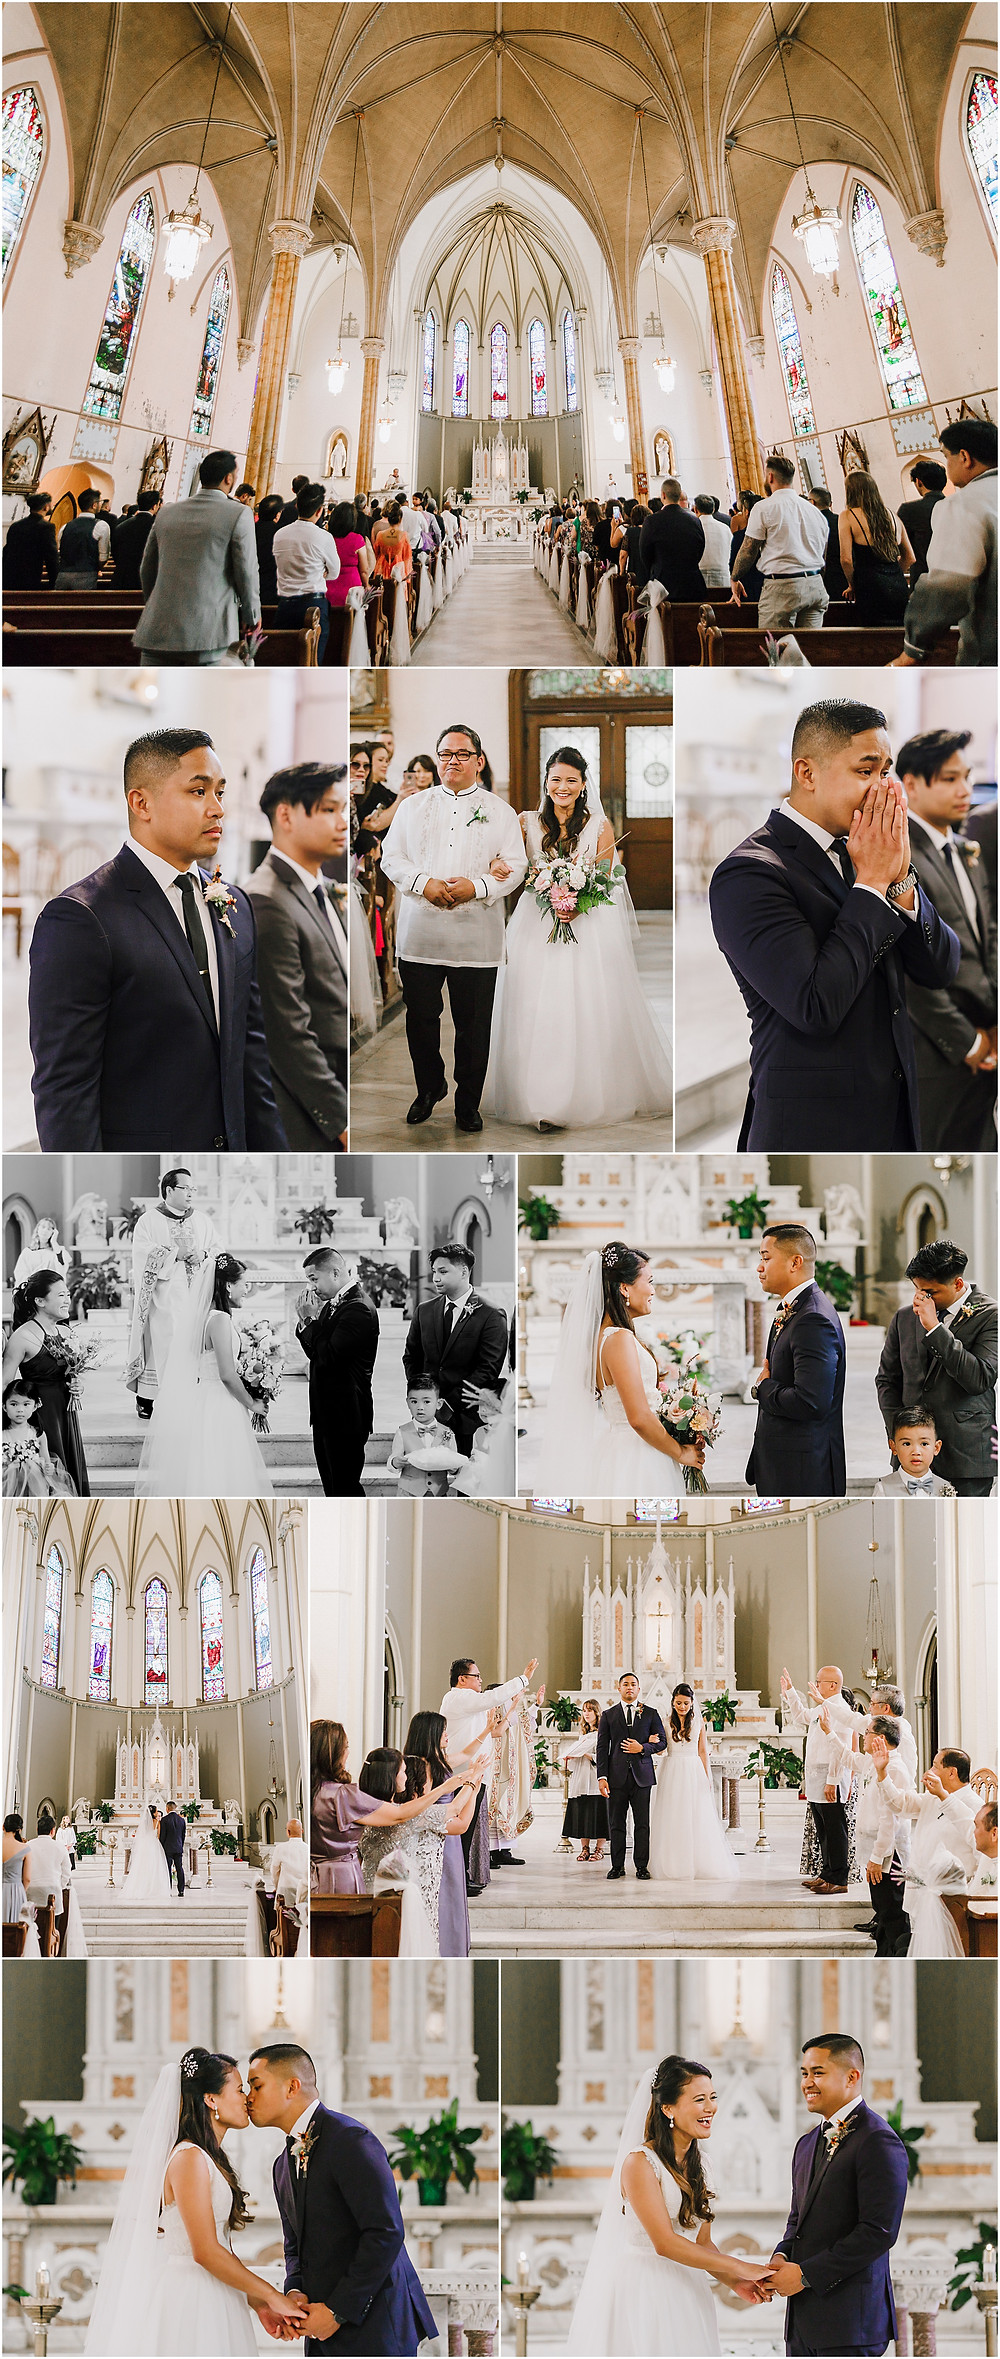 Holy Cross Church Wedding Ceremony - Baltimore, Maryland - Baltimore Wedding Photographer